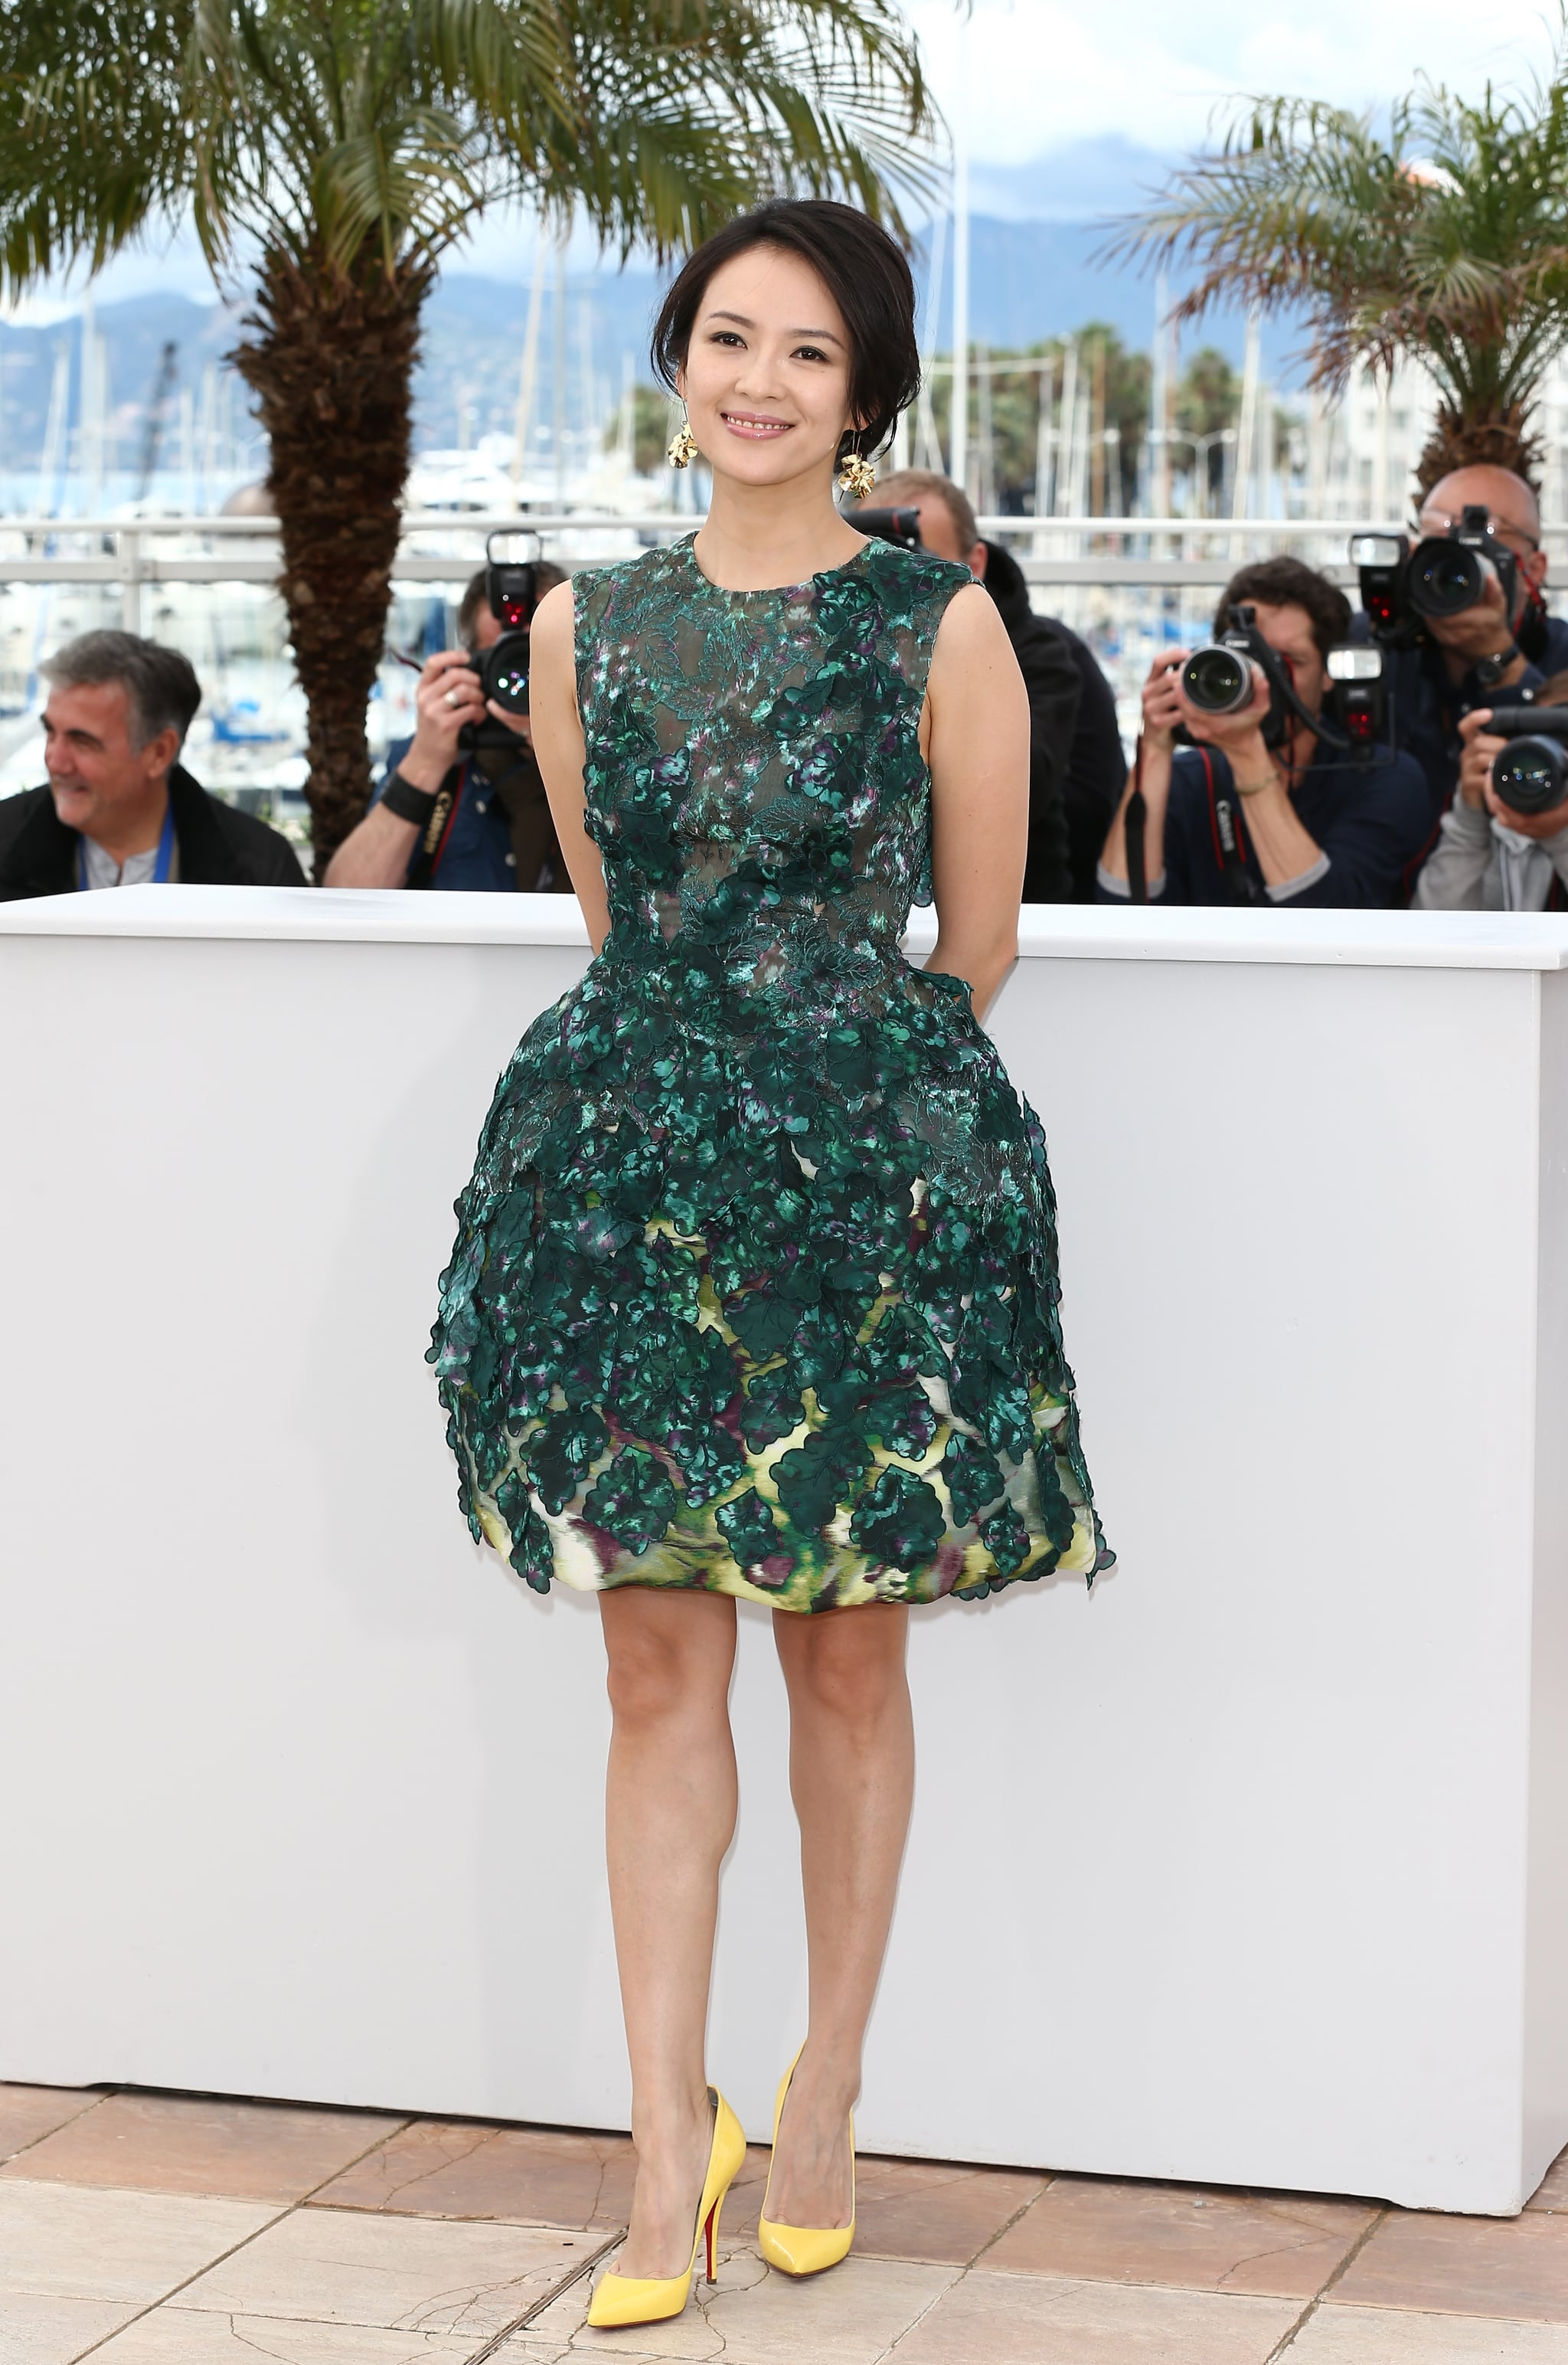 Zhang Ziyi wore a green dress to the Thursday photocall for  Un Certain Regard at the Cannes Film Festival.